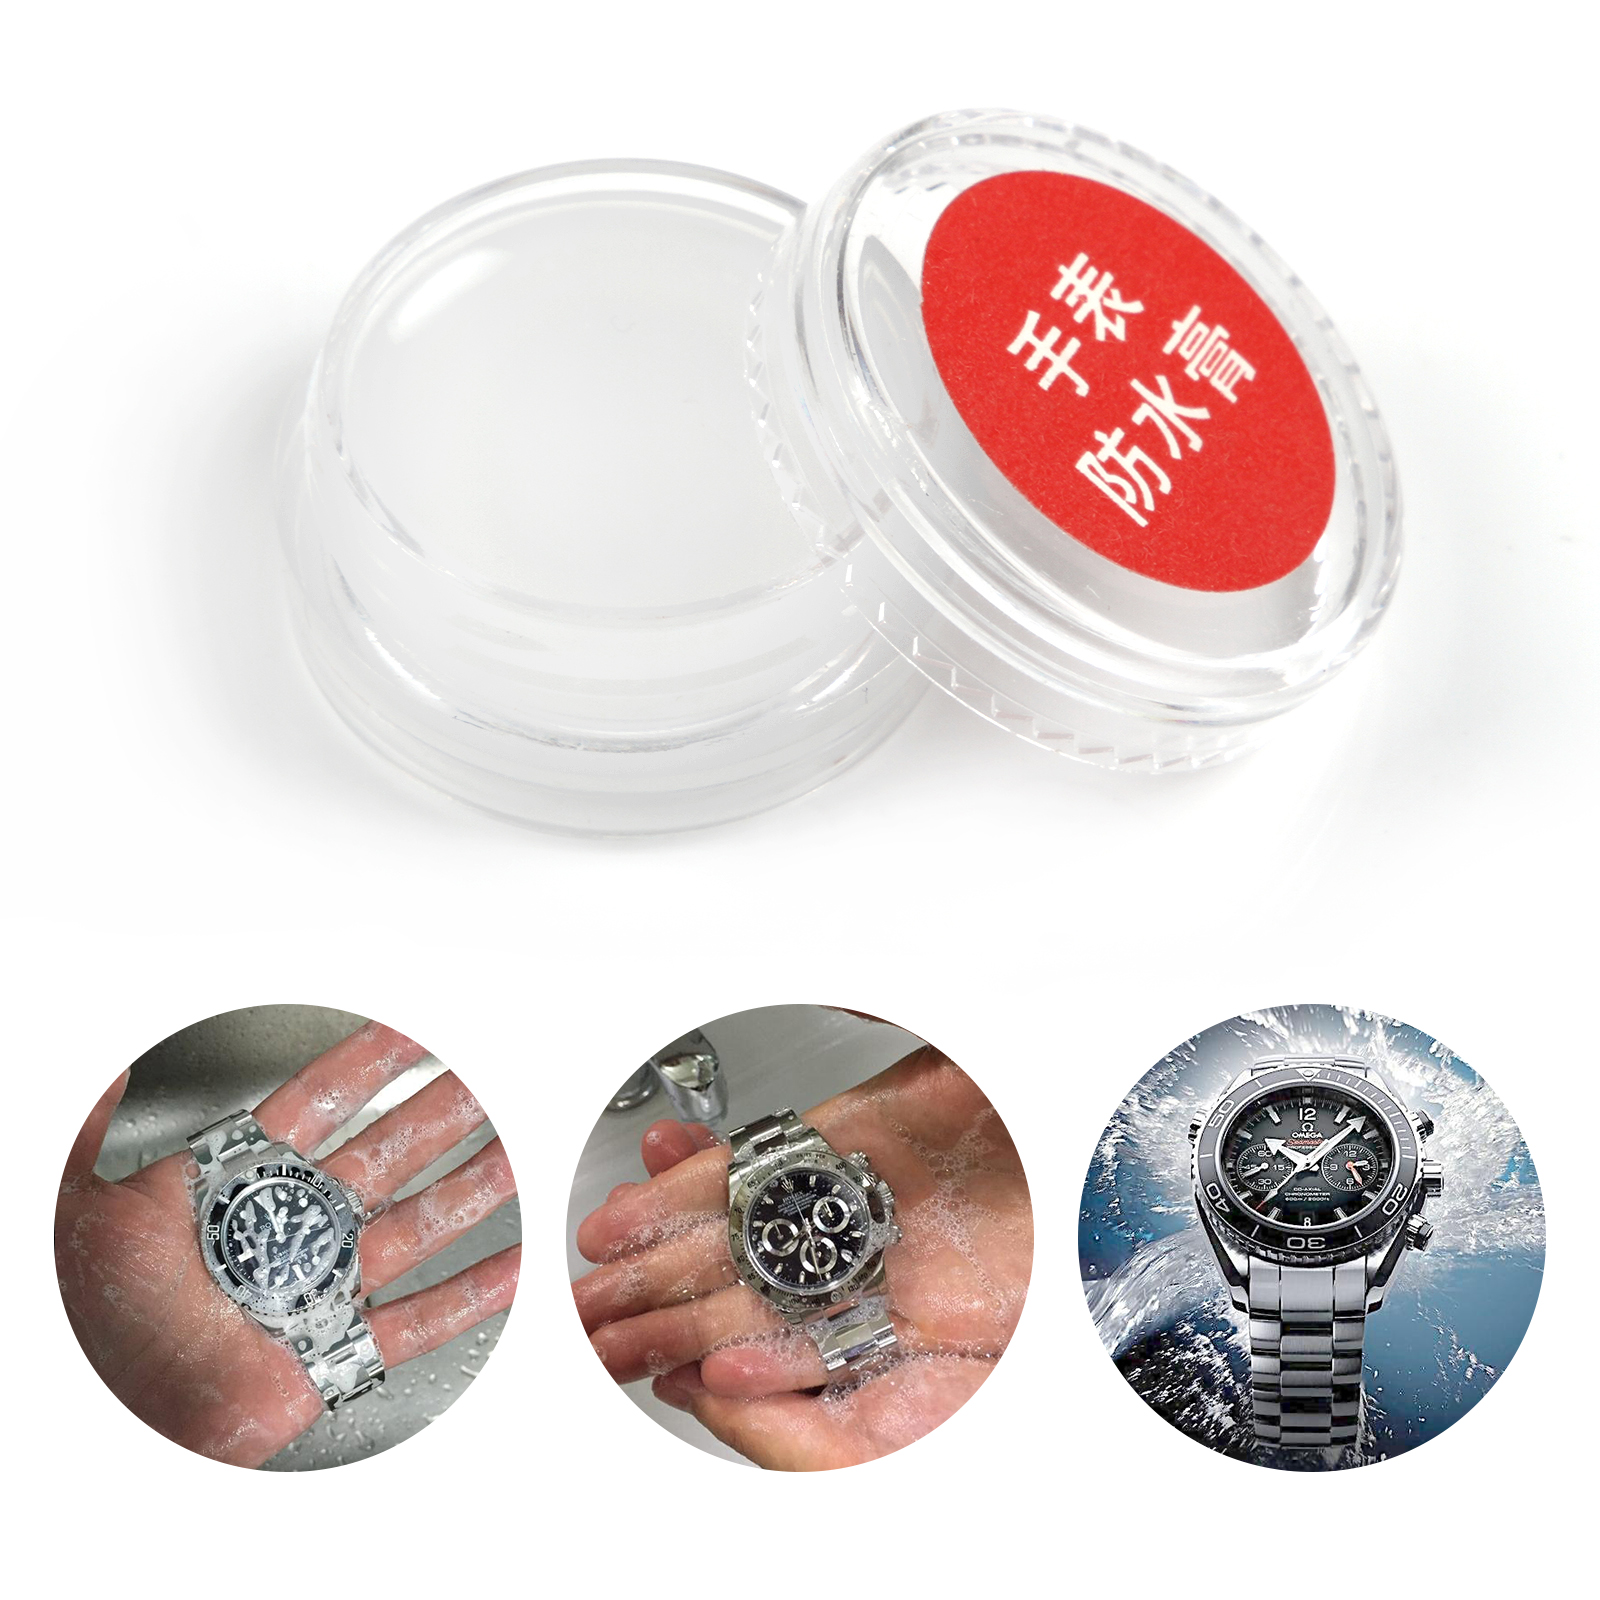 Silicone Grease Waterproof Watch Cream Repair Tool For Watch Lubrication